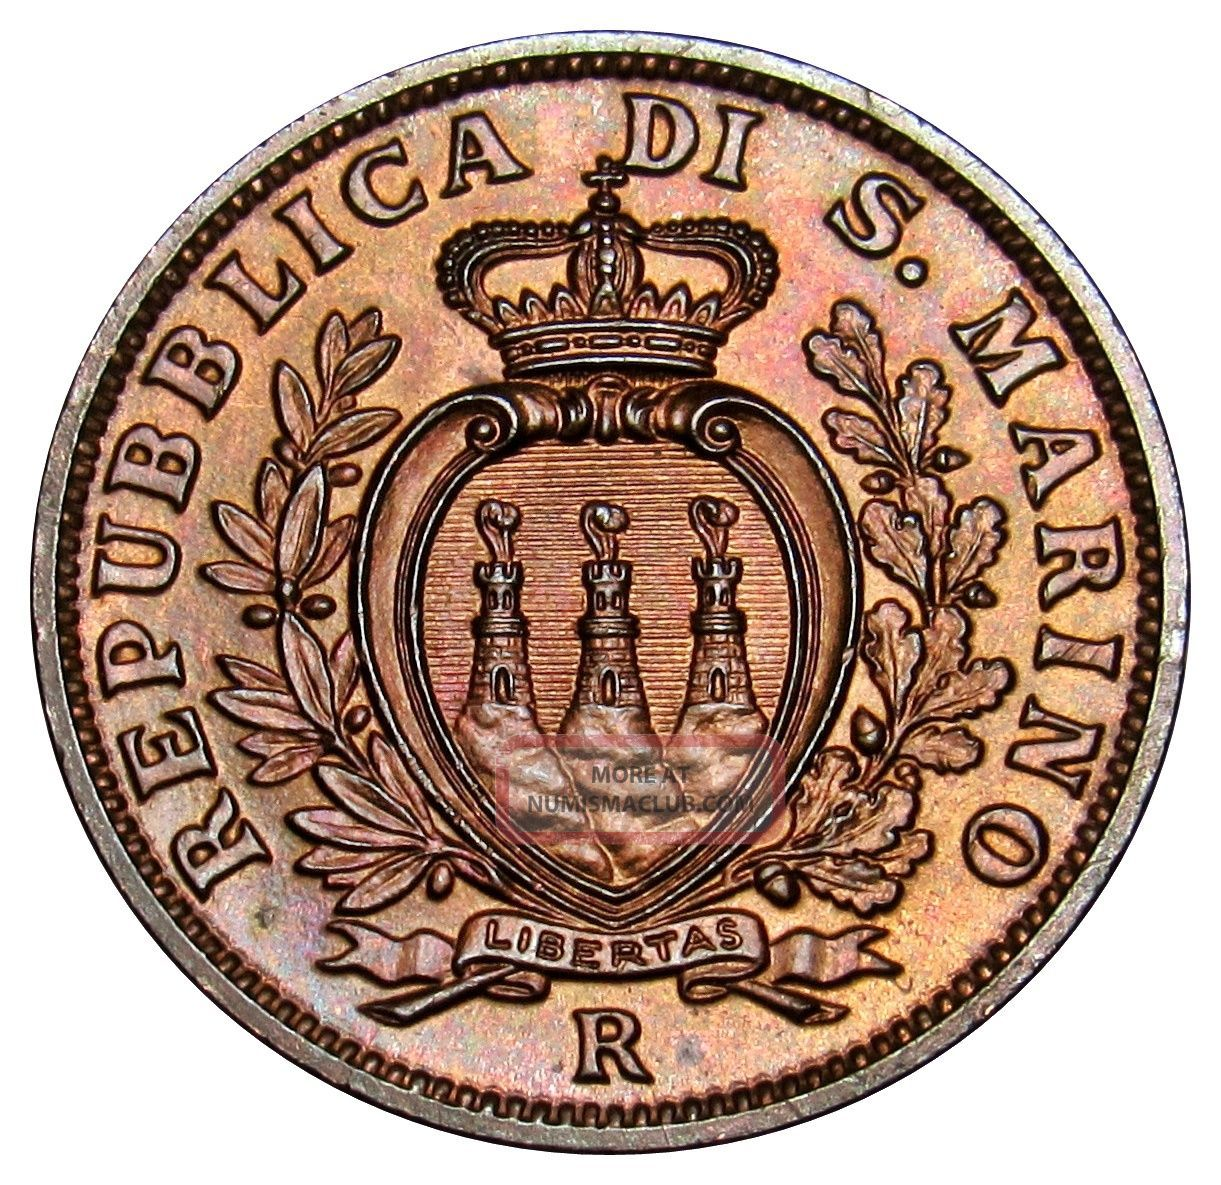 San Marino 10 Centesimi Coin 1938 Km 13 Au Ve01 (a3) San Marino photo